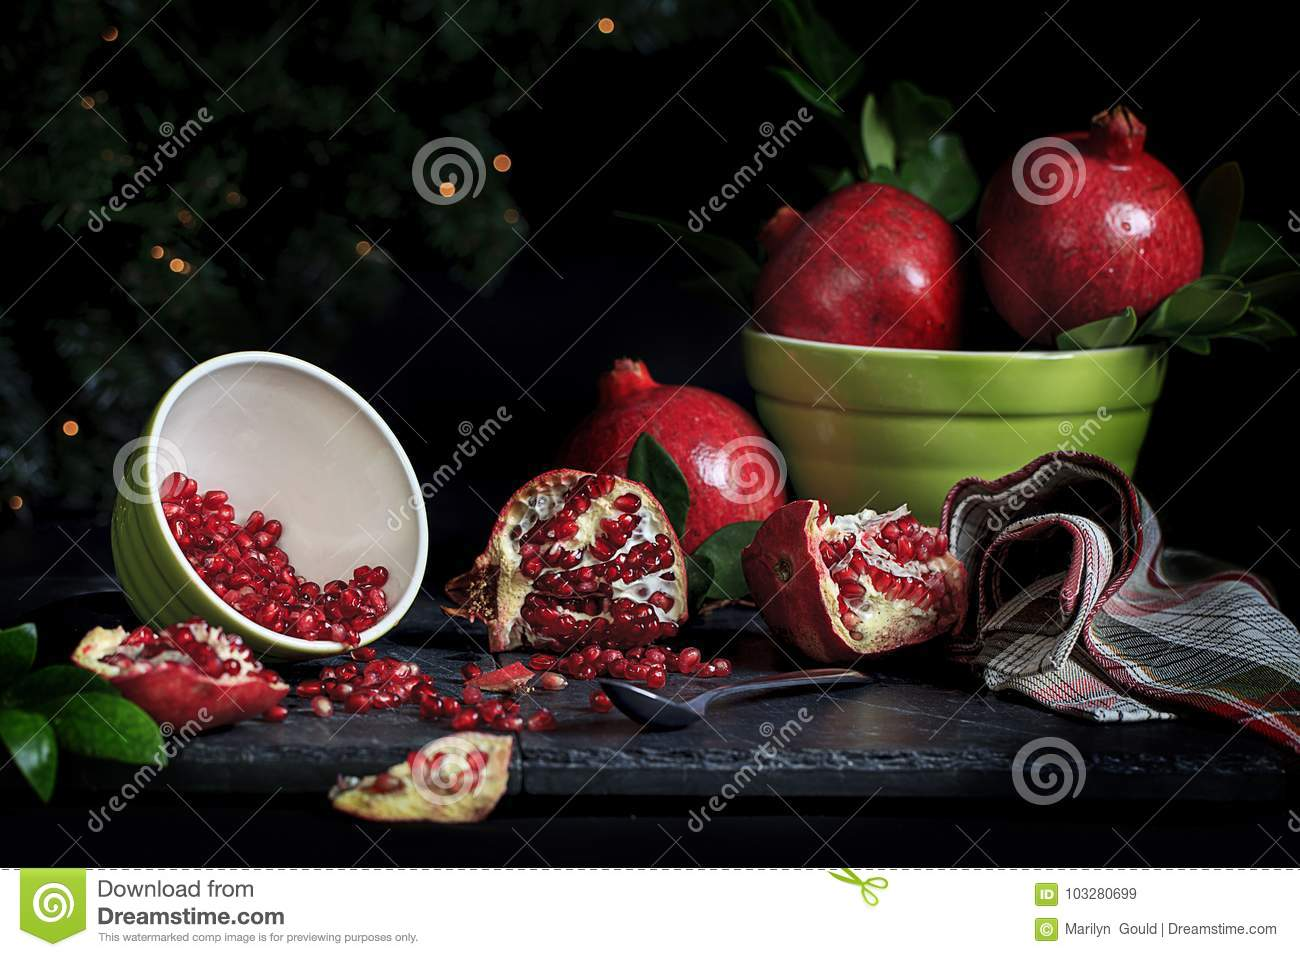 Whole Pomegranates and Seeds in Bowl